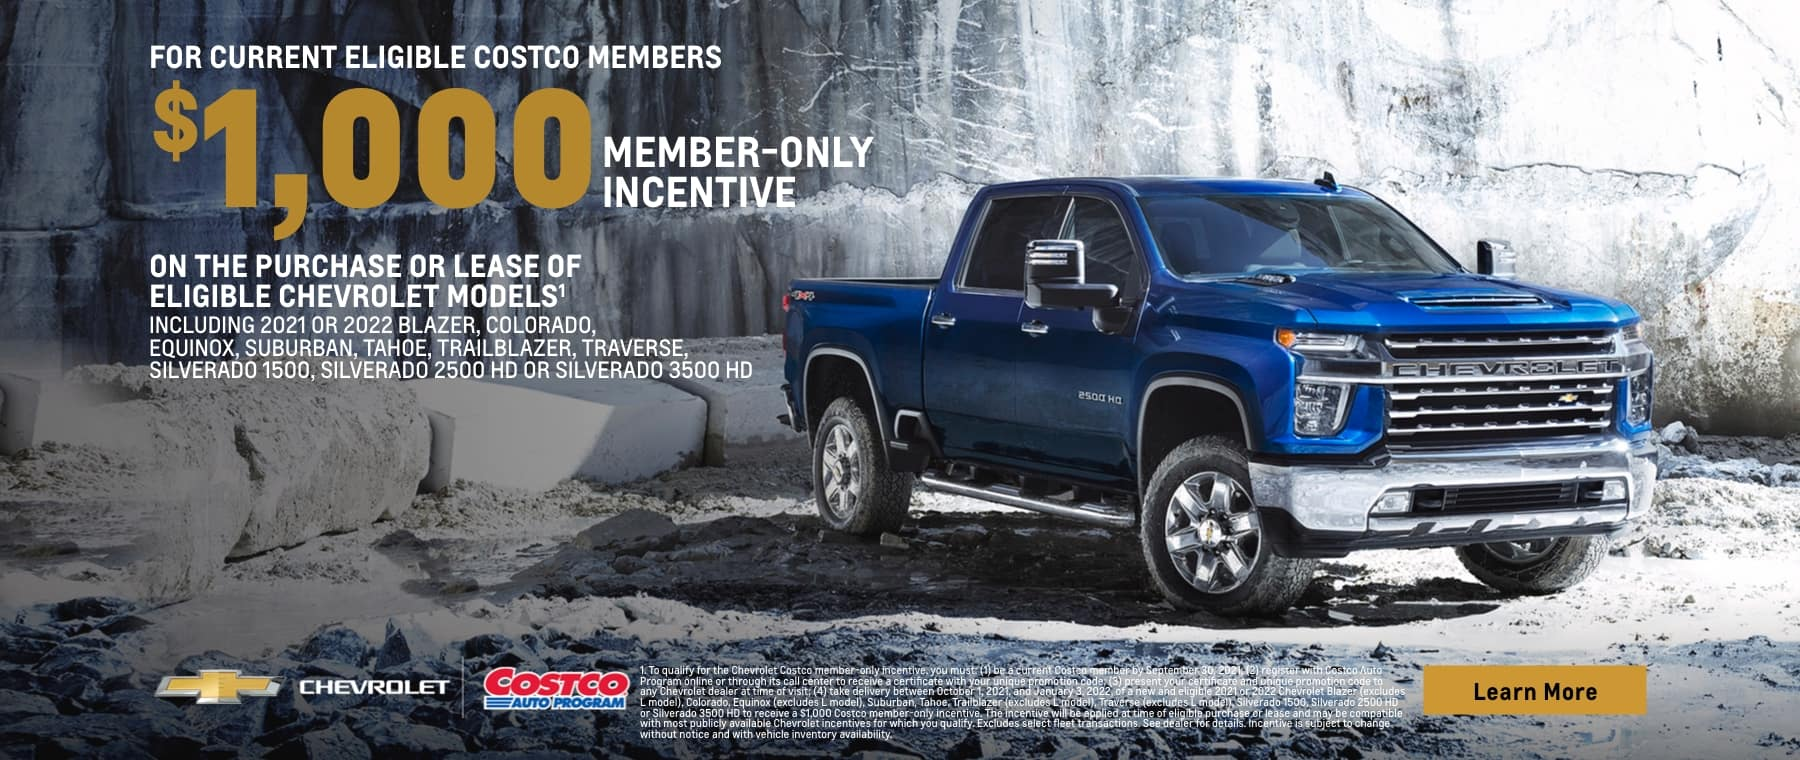 for current eligible costco members 1000 member only incentive